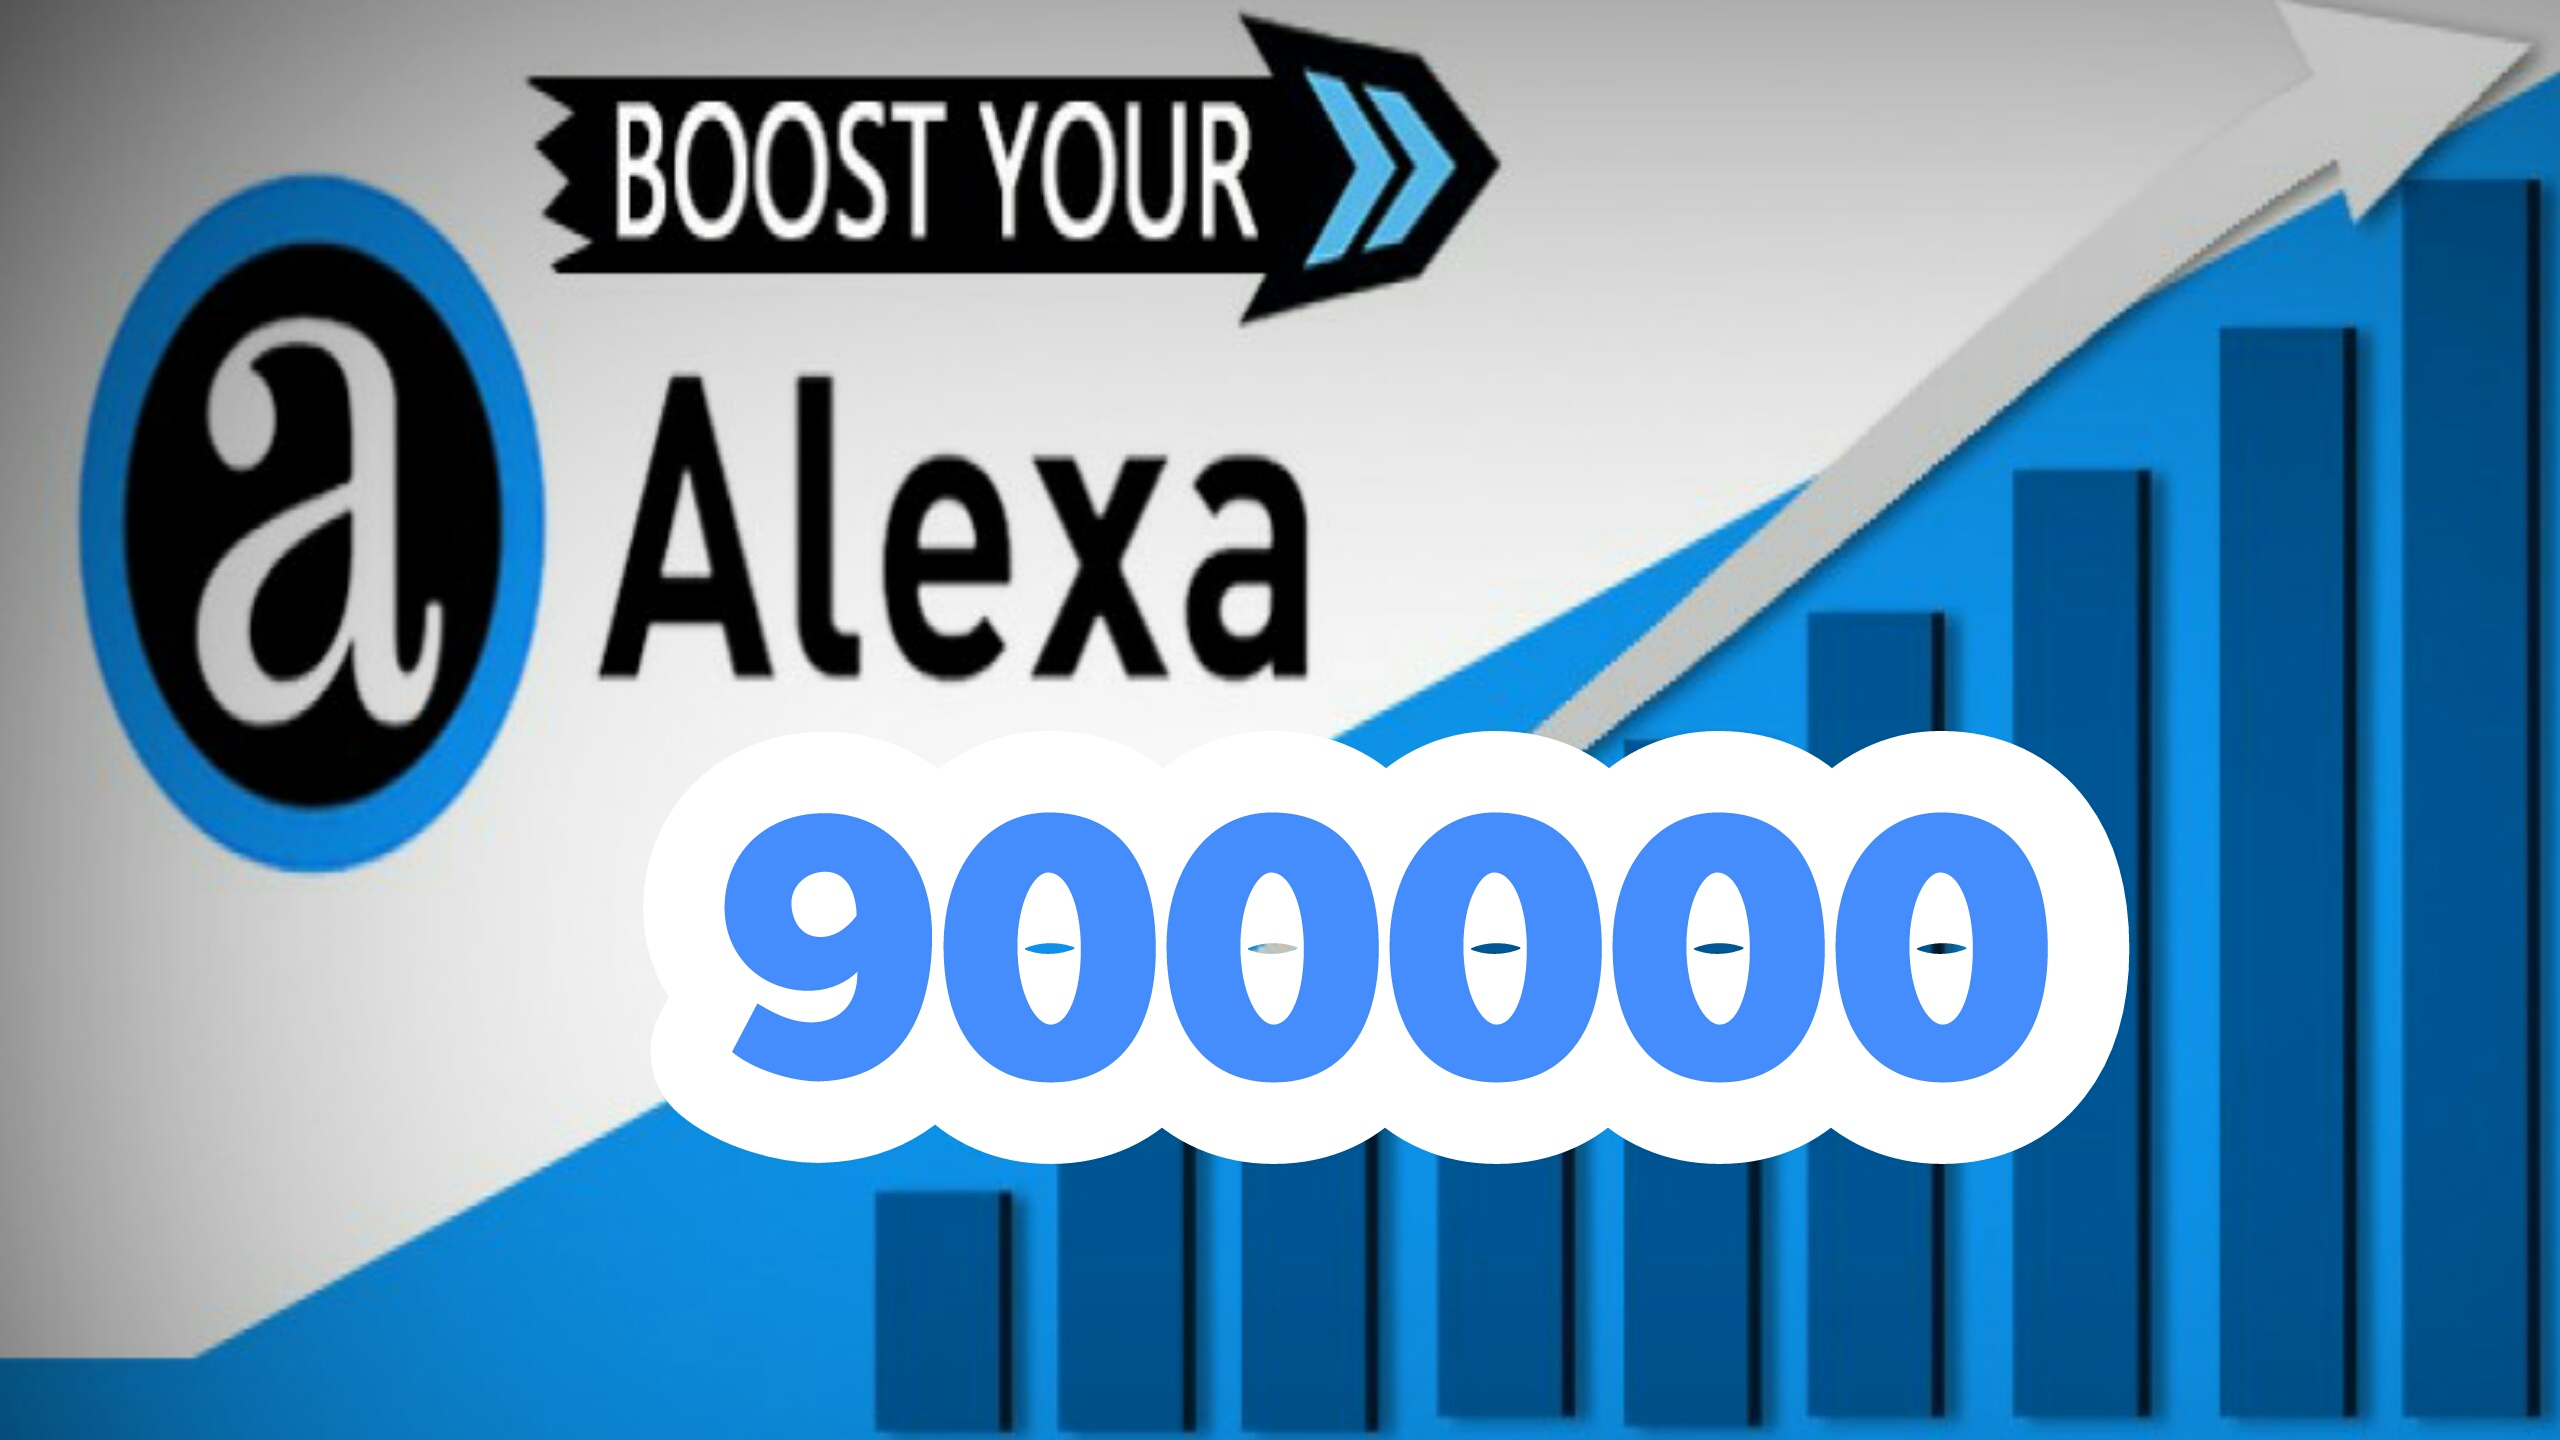 Improve ALEXA GLOBAL Rank Below 900000